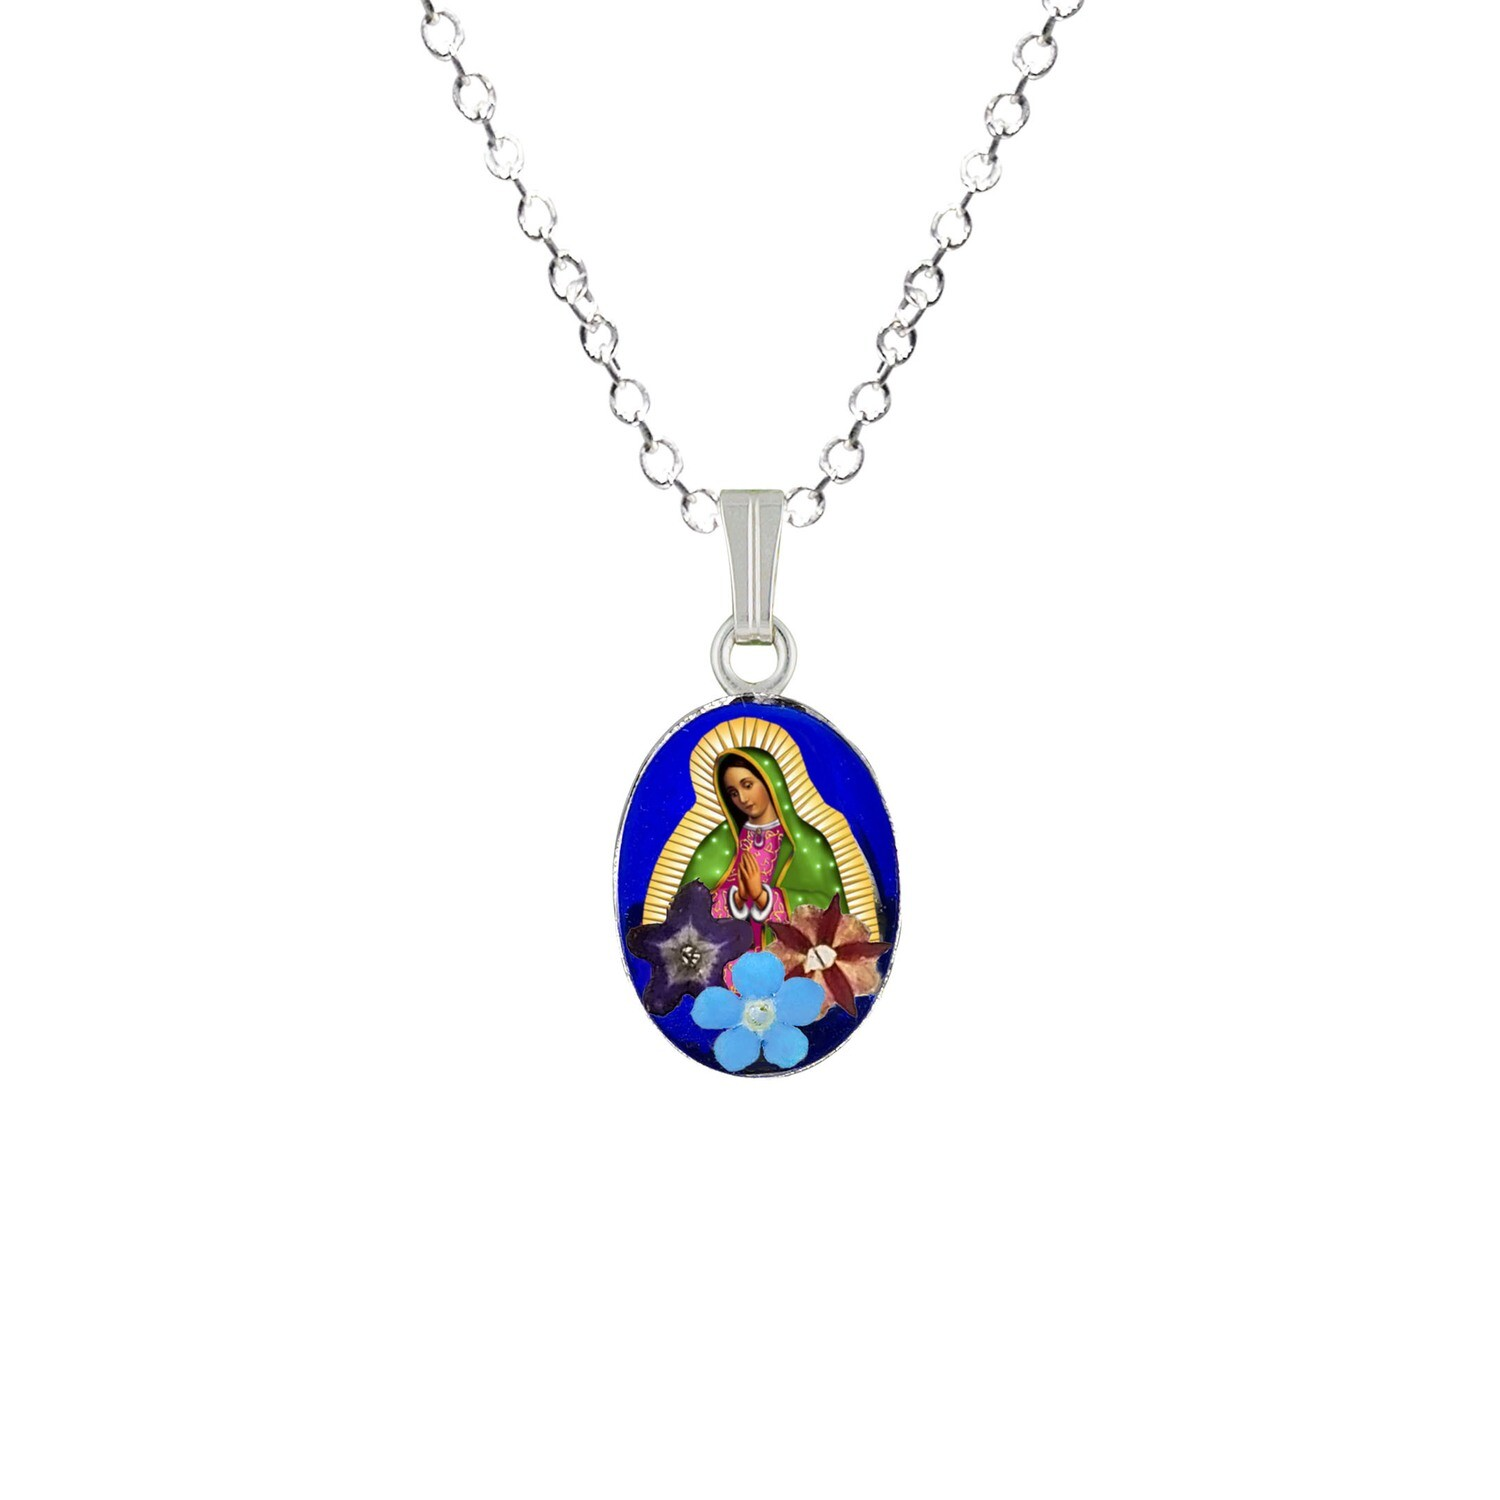 Guadalupe Virgen, Small Oval Pendant, Navy Blue, Rhodium Plated